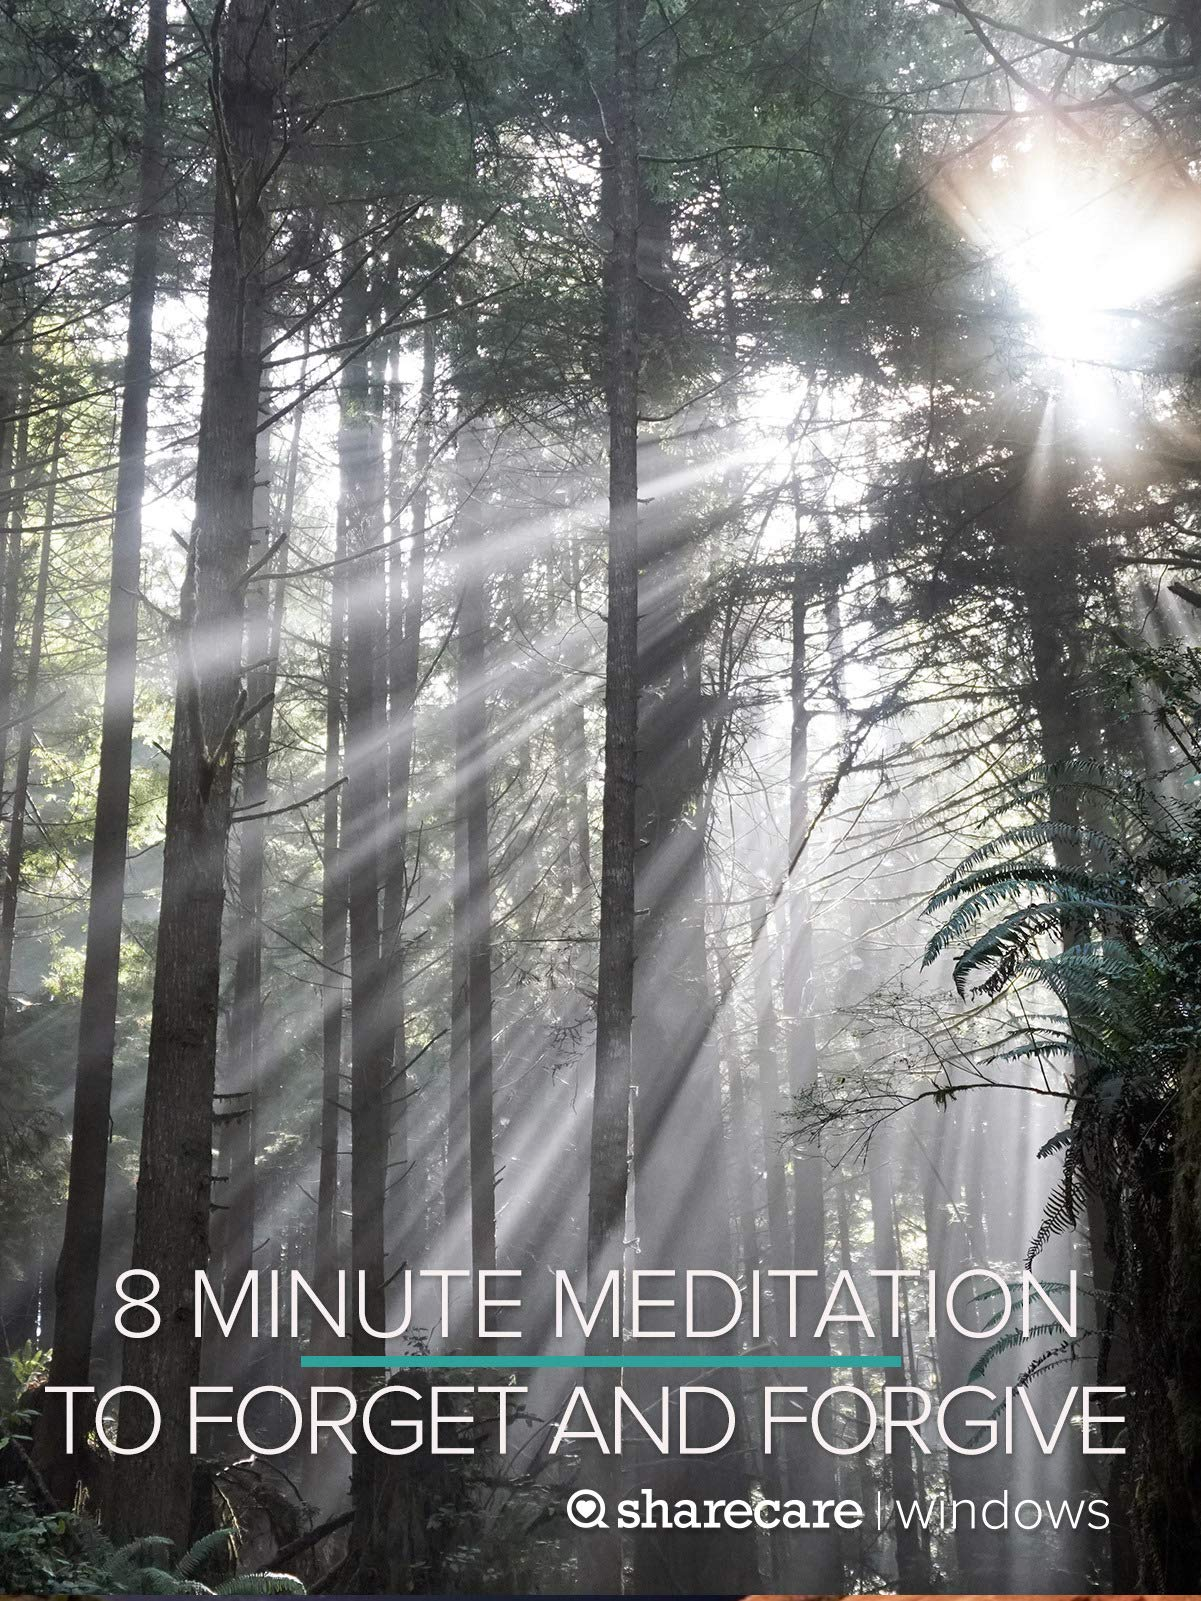 8 Minute Meditation to Forget and Forgive